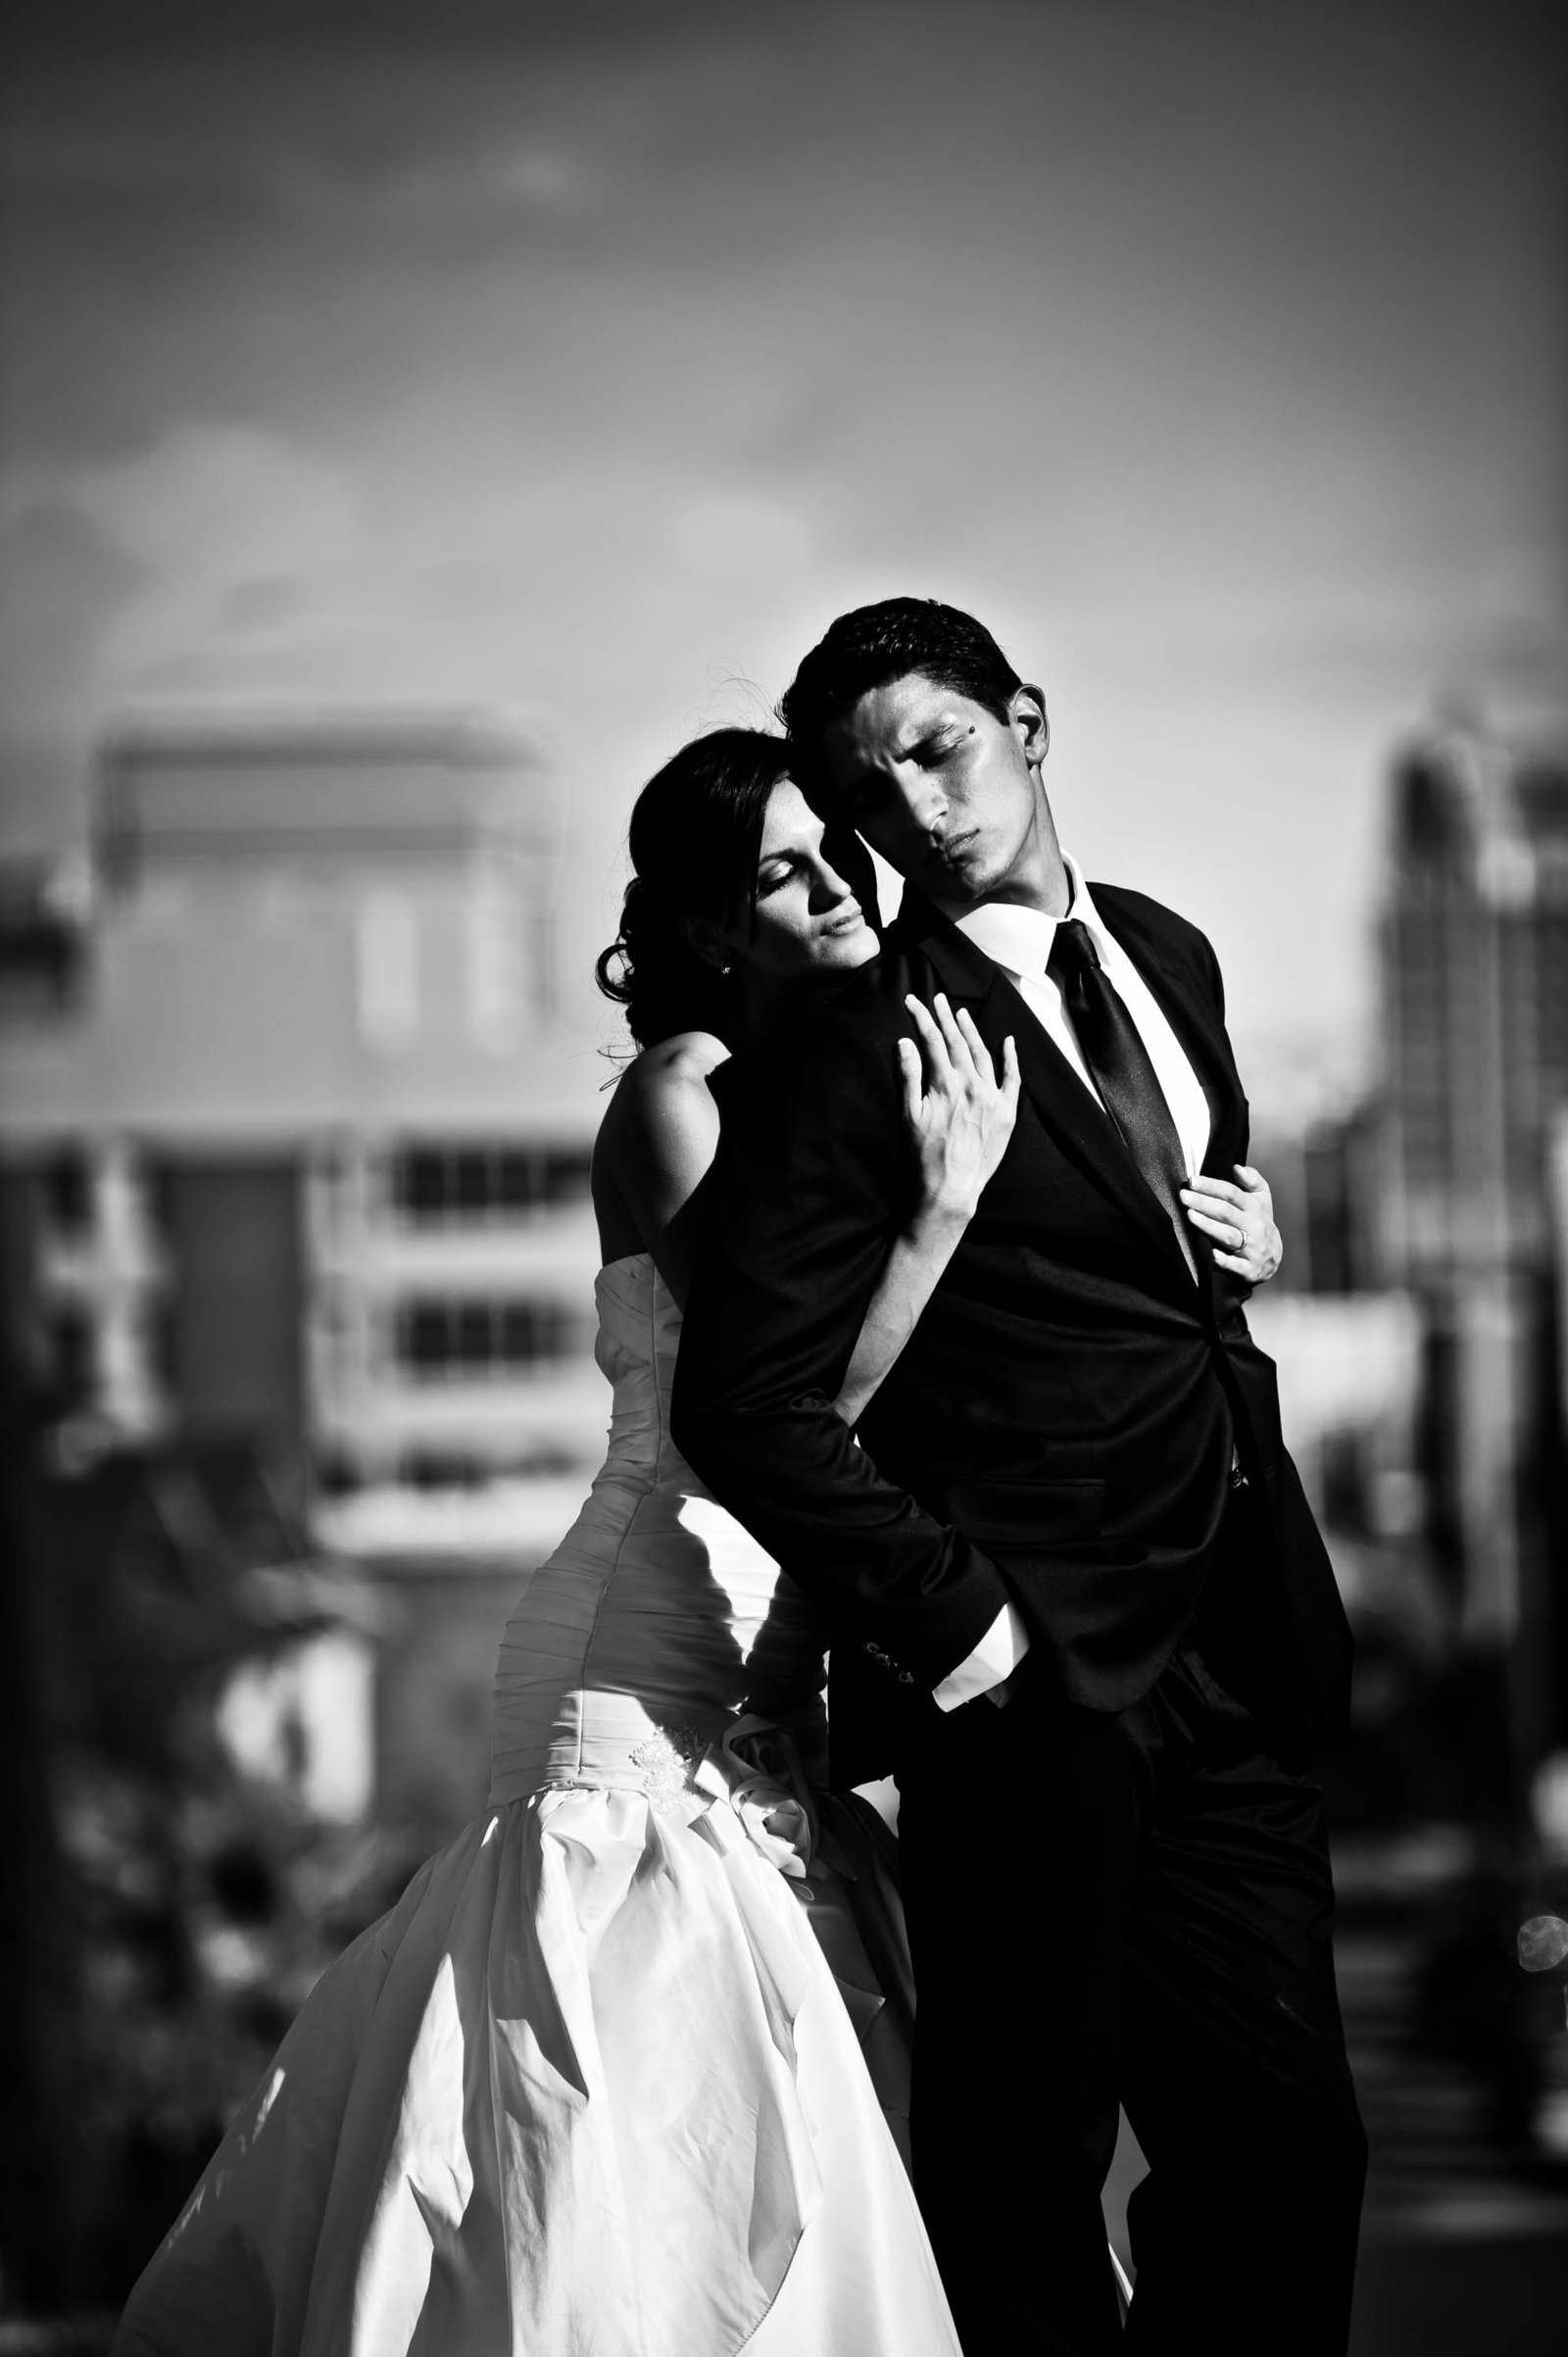 303-El-paso-wedding-photographer-El Paso Wedding Photographer_P65